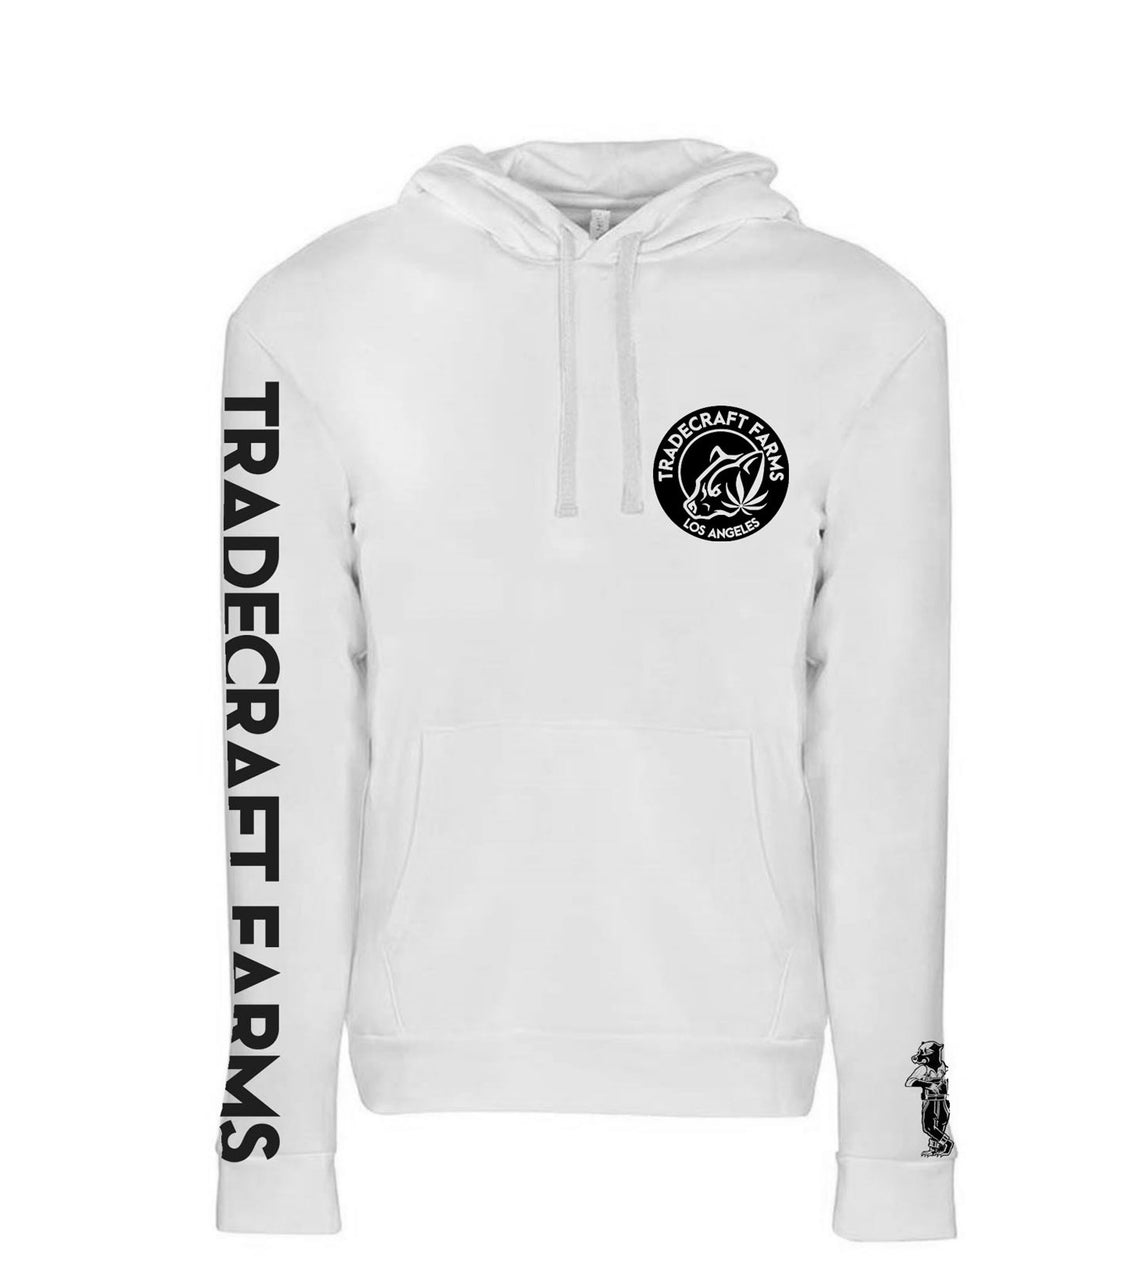 TRADECRAFT FARMS PULLOVER HOODY - WHITE